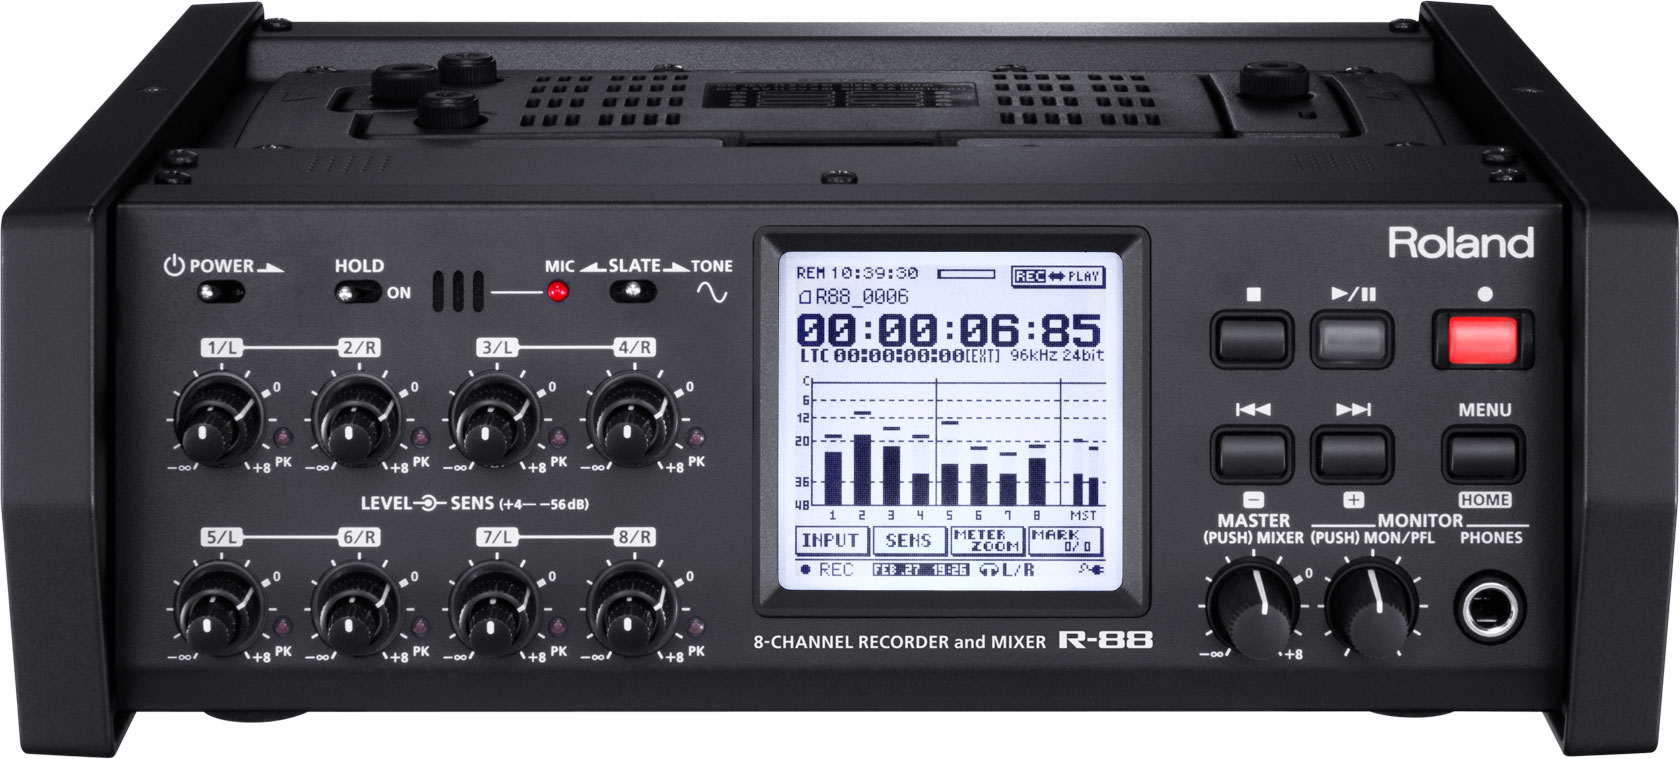 R-88 | 8-Channel Recorder and Mixer - Roland Pro A/V